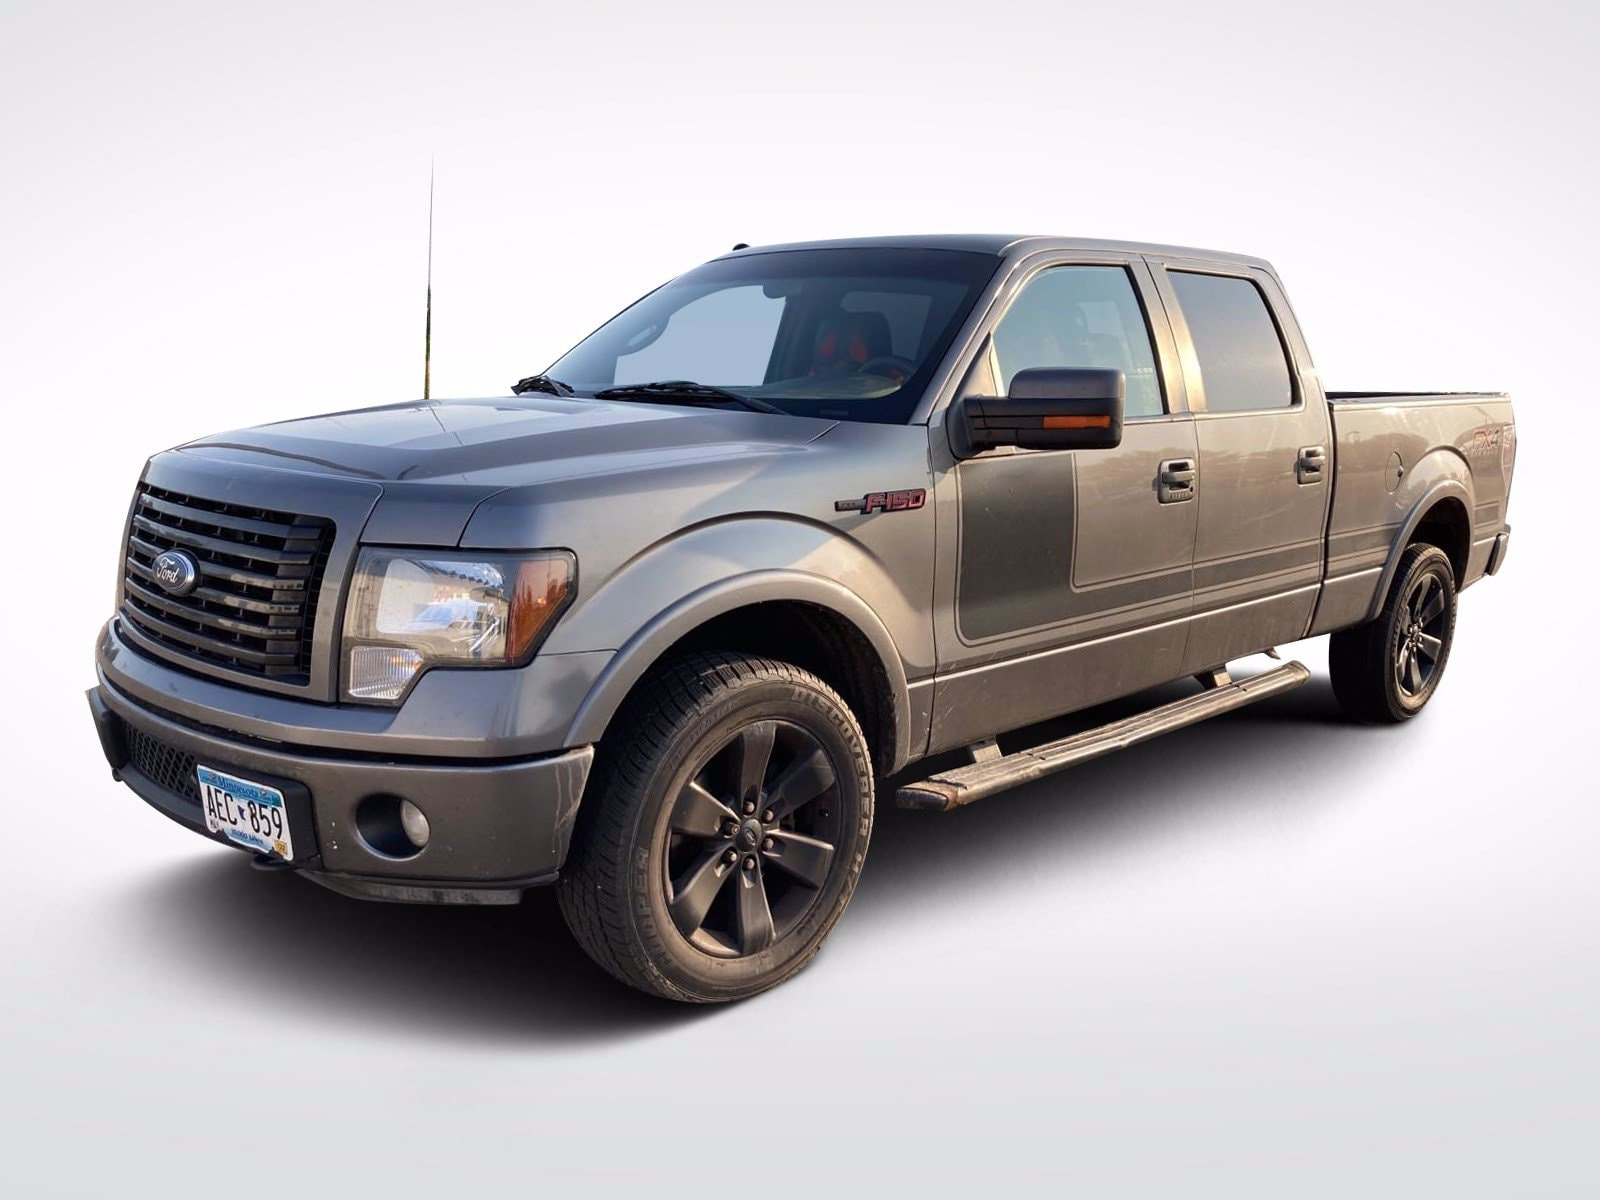 Used 2012 Ford F-150 XLT with VIN 1FTFW1ET5CFA49293 for sale in Baxter, Minnesota